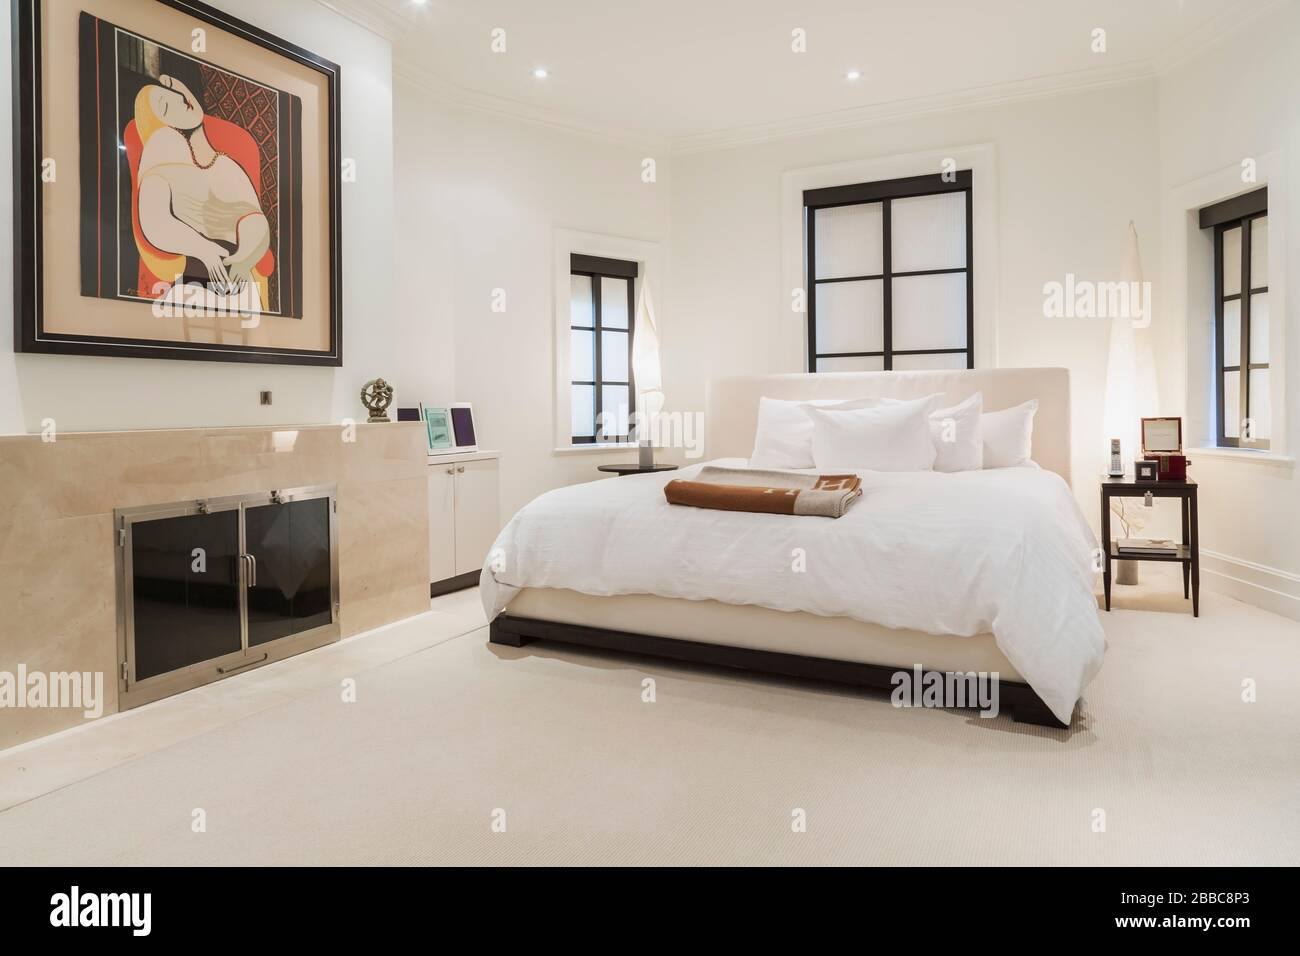 King Size Bed With Cream Coloured Cloth Headboard Wooden Nightstands And Fireplace In Upstairs Master Bedroom With White Carpeting Inside A 1924 Semi Detached Cottage Style Home Quebec Canada This Image Is Property